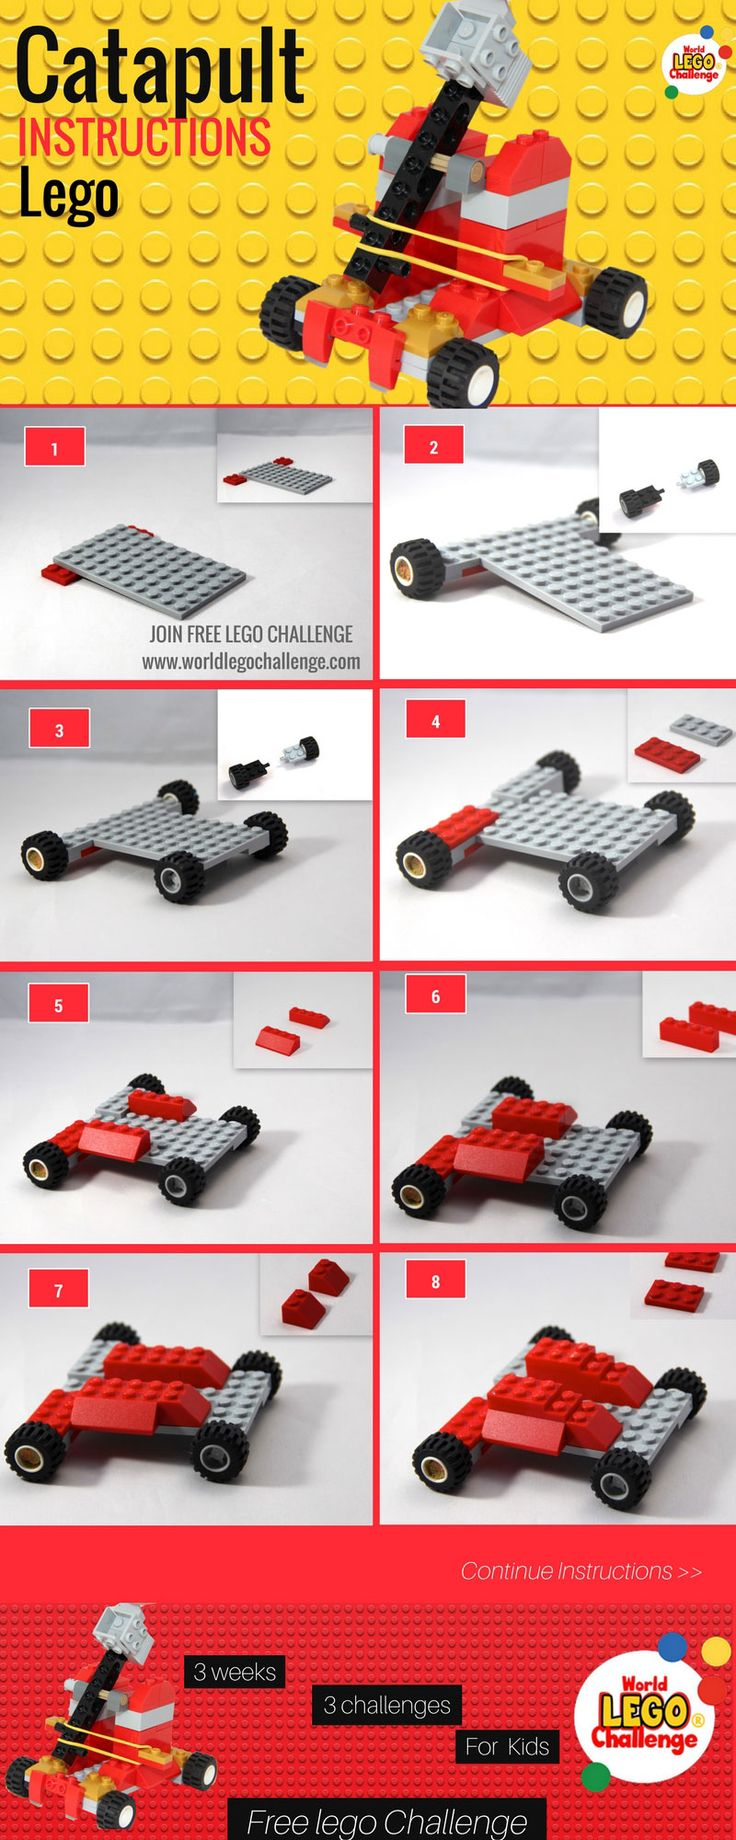 Lego catapult how to build --->click for full instructions! ---> You are welcome to join the Next World Lego challenge #lego #catapult #how #to #build #how #to #construct #infographic #diy  #slingshot #ararbalest #ballista #heave #propeller #trebuchet ow to build it!!..it's so simple!! you have the bricks, you dont need to purchase anything!! Join ourn next free world lego challenge for kids! it boost kids genious and creativity! #infographic #lego #baby #dragon #diy #ideas #instructions…